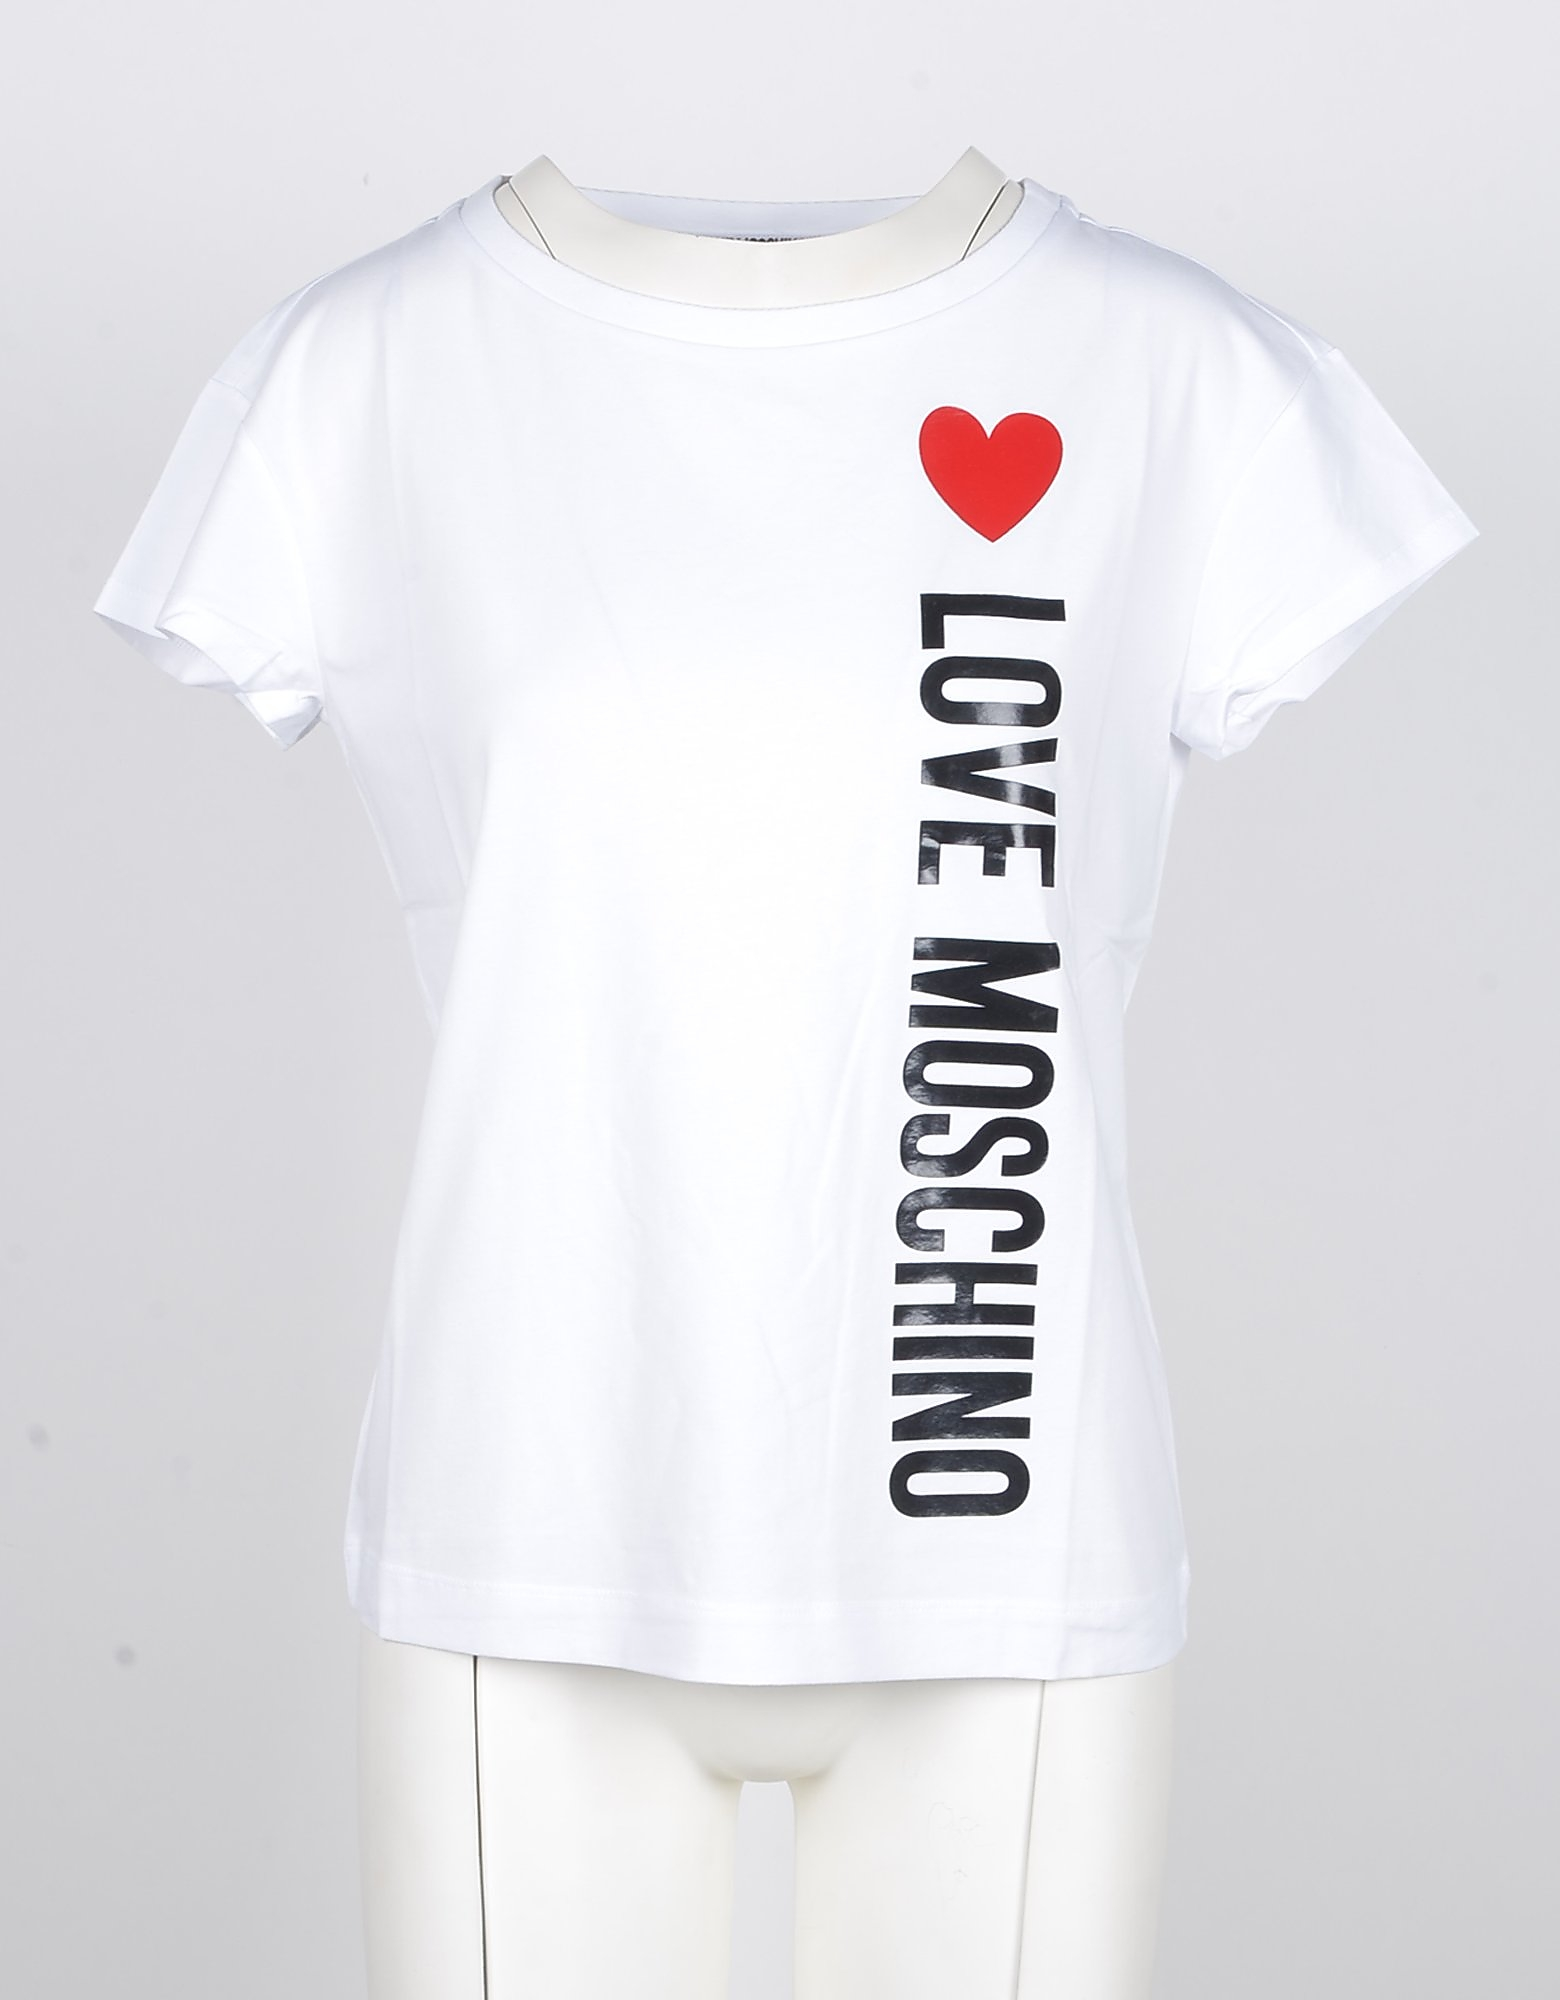 Love Moschino Designer T-Shirts & Tops, Women's White Tshirt